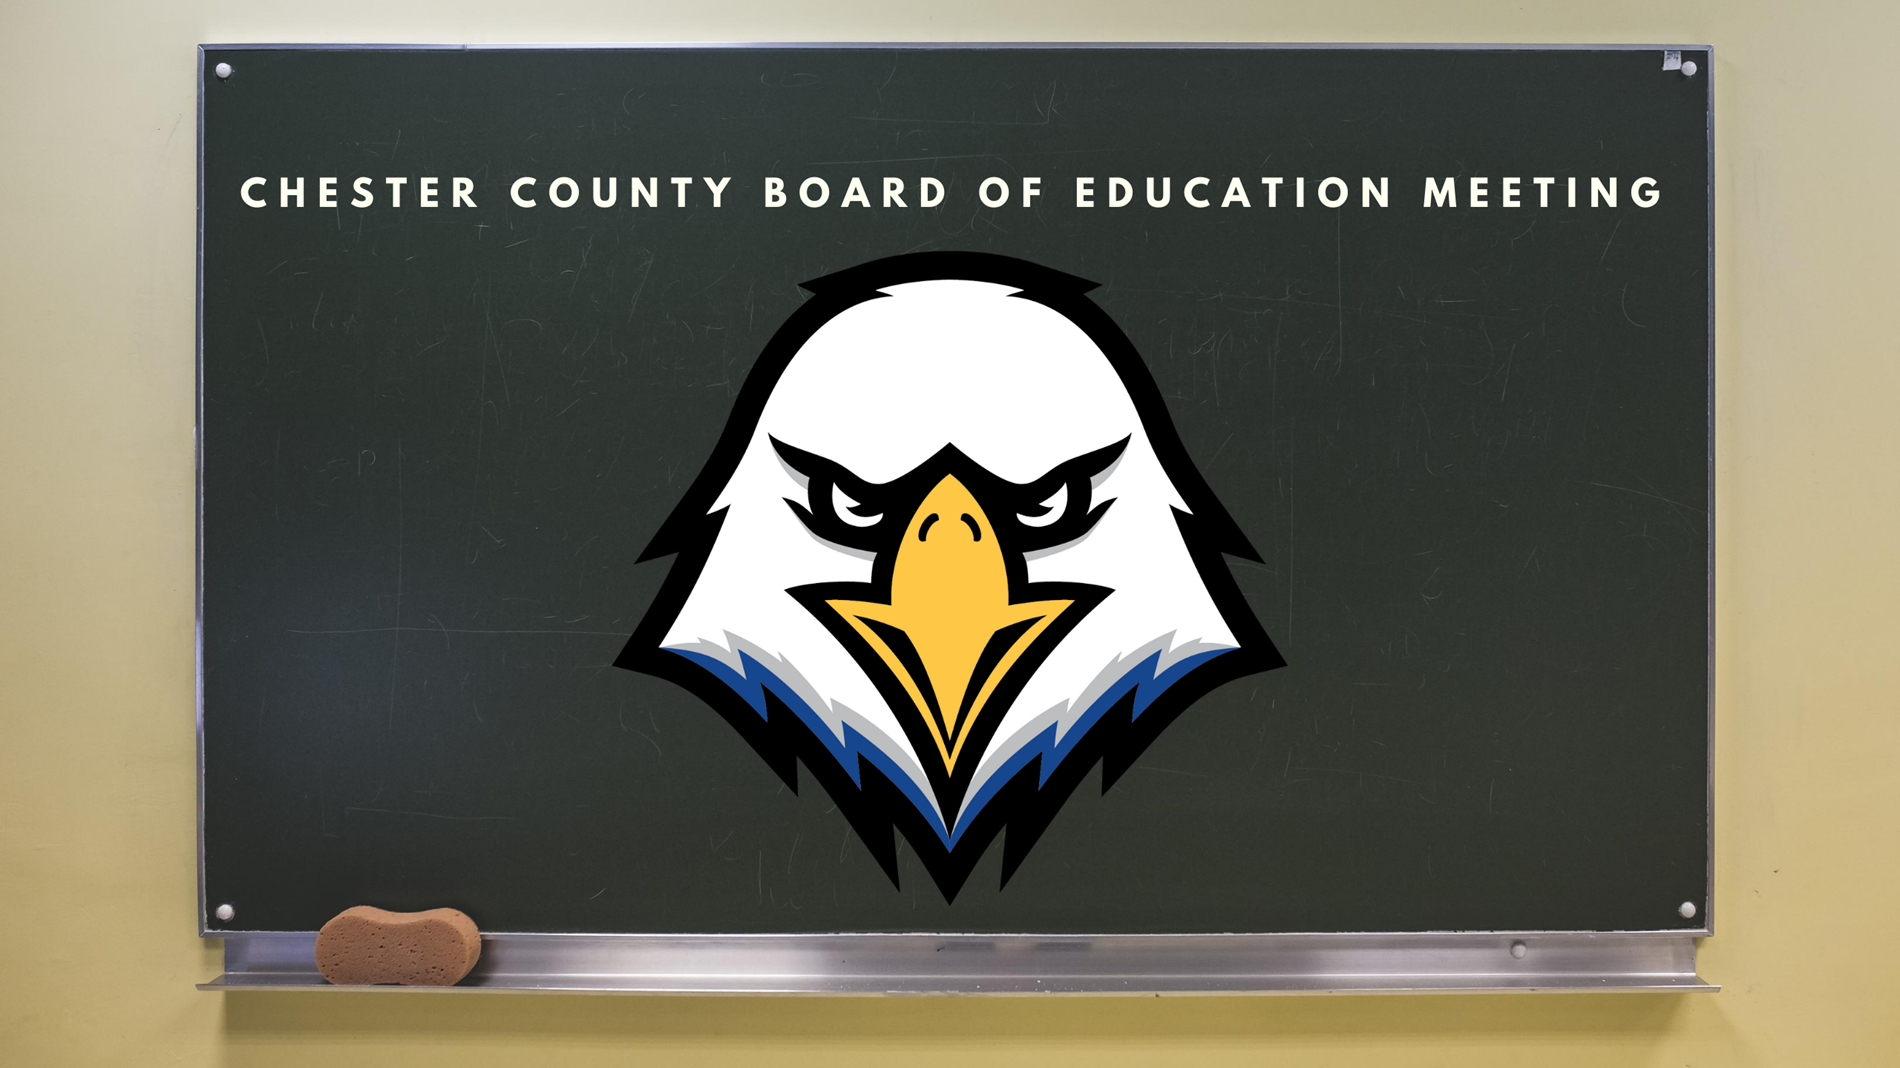 Board of Education Meeting Graphic